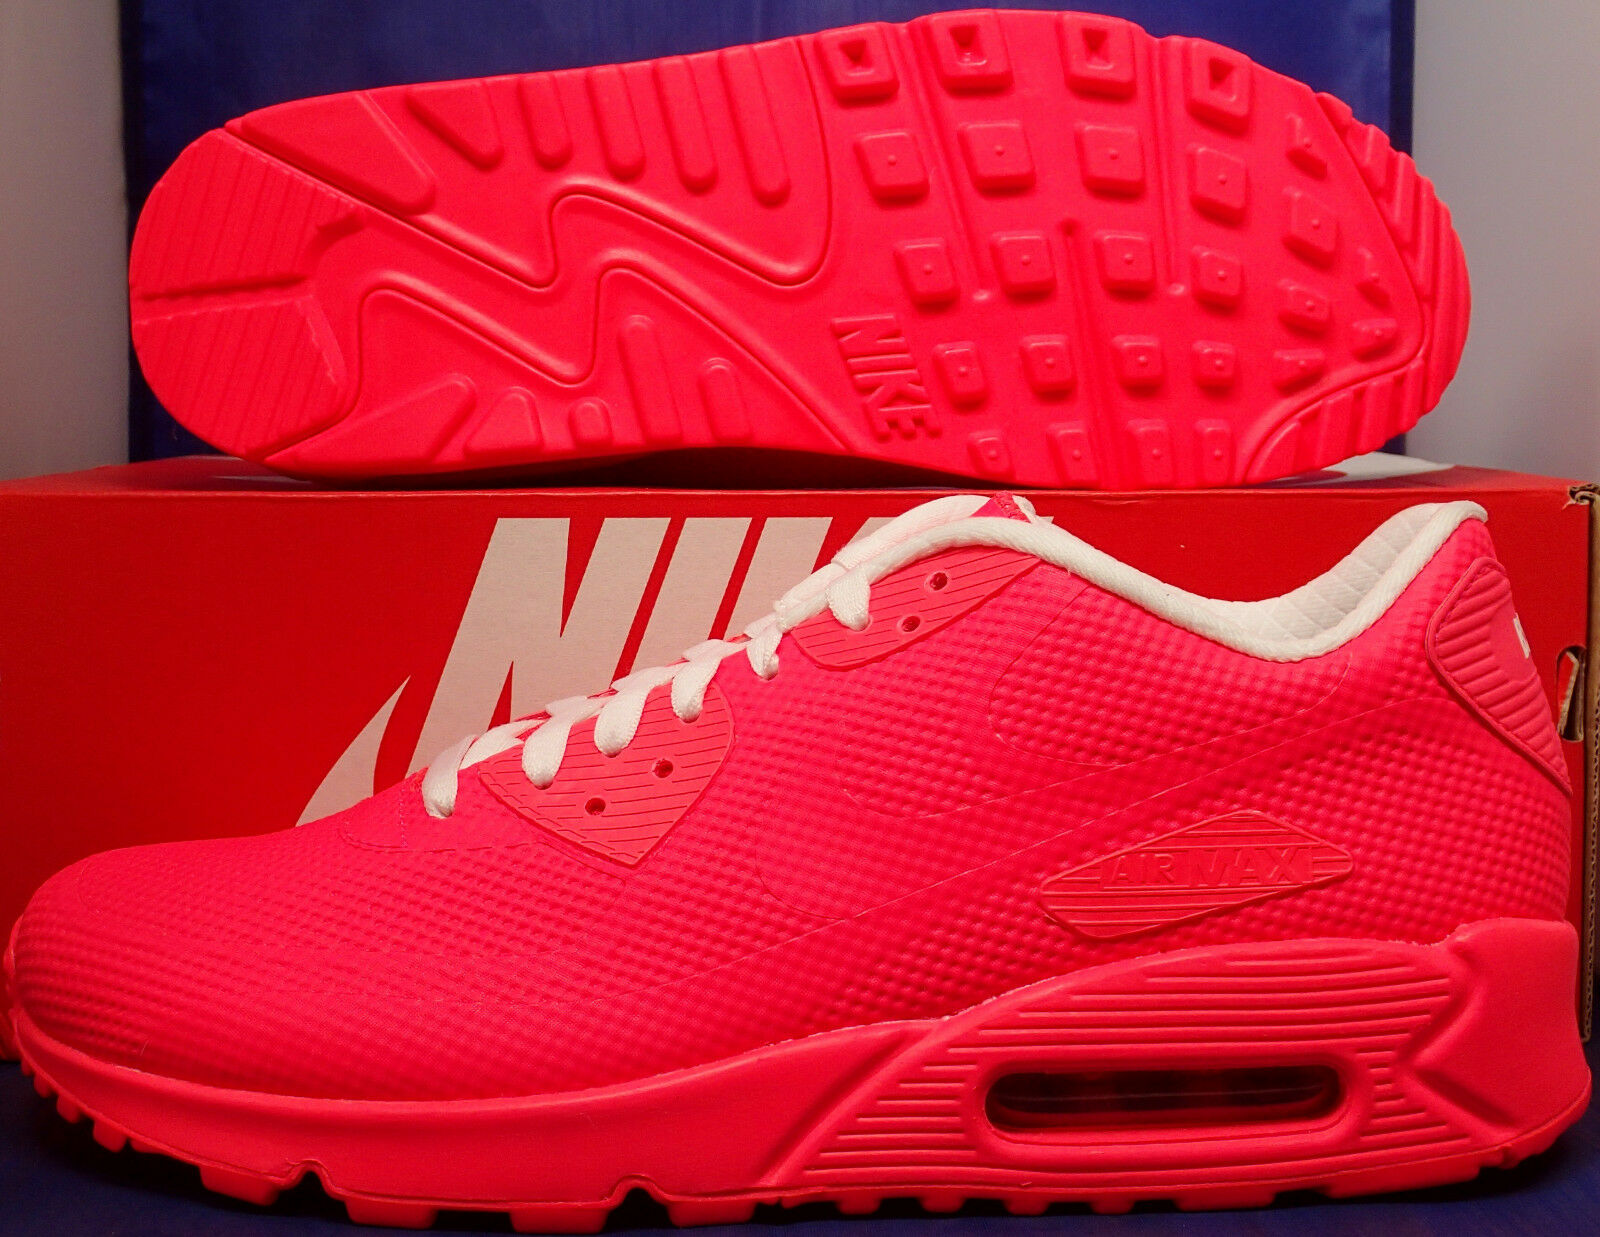 Nike Air Max 90 Hyperfuse Premium iD Solar Red White SZ 9.5 ( 822560-997 )